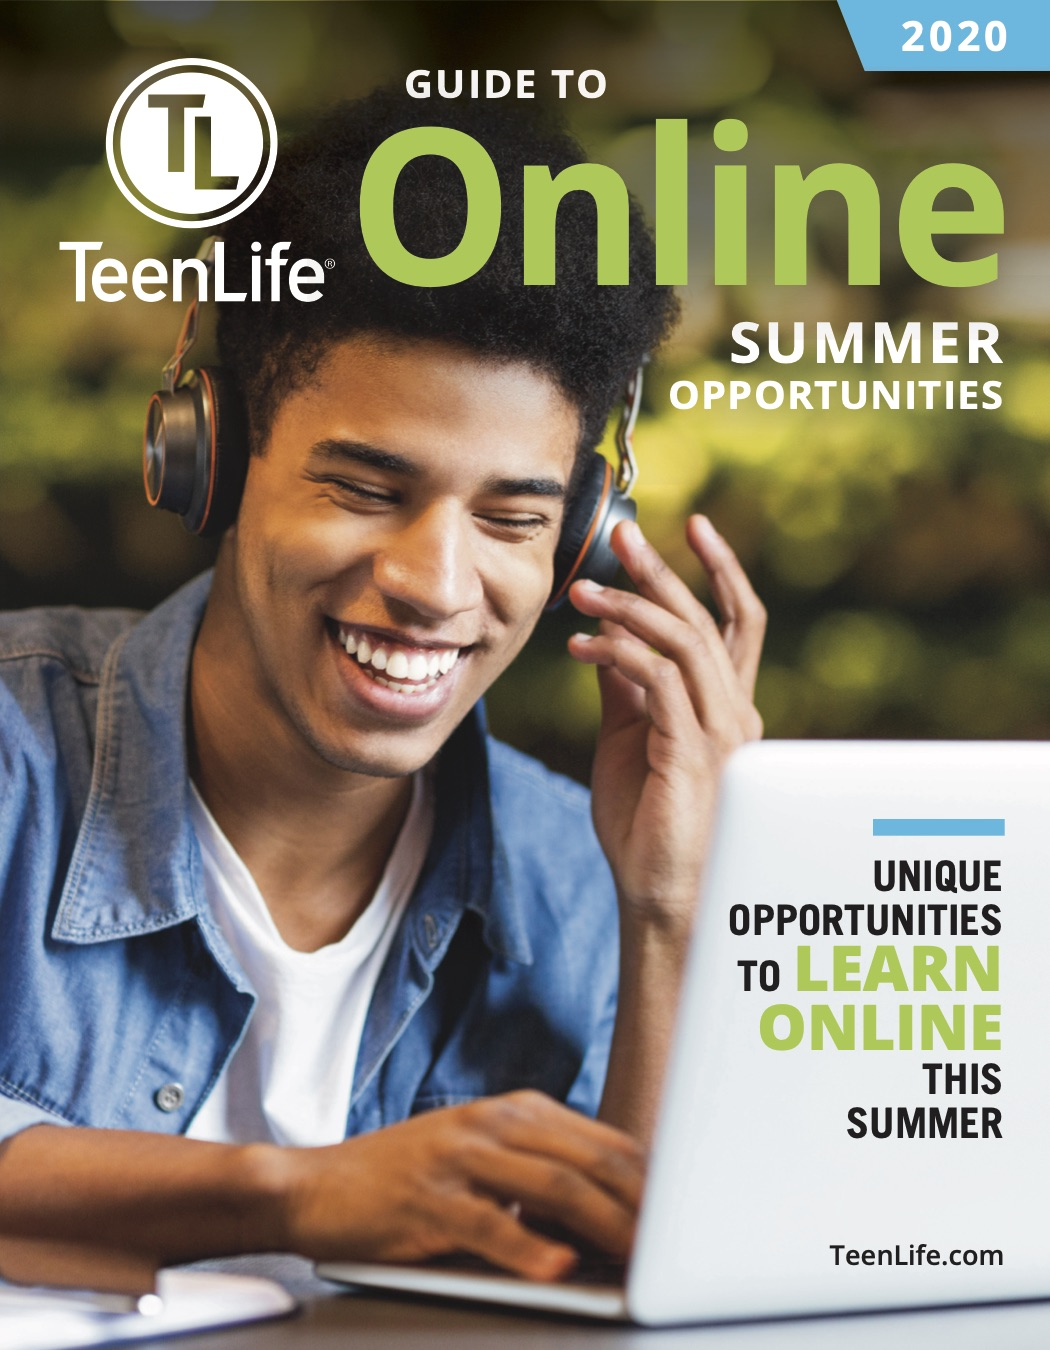 Guide to Online Summer Programs 2020